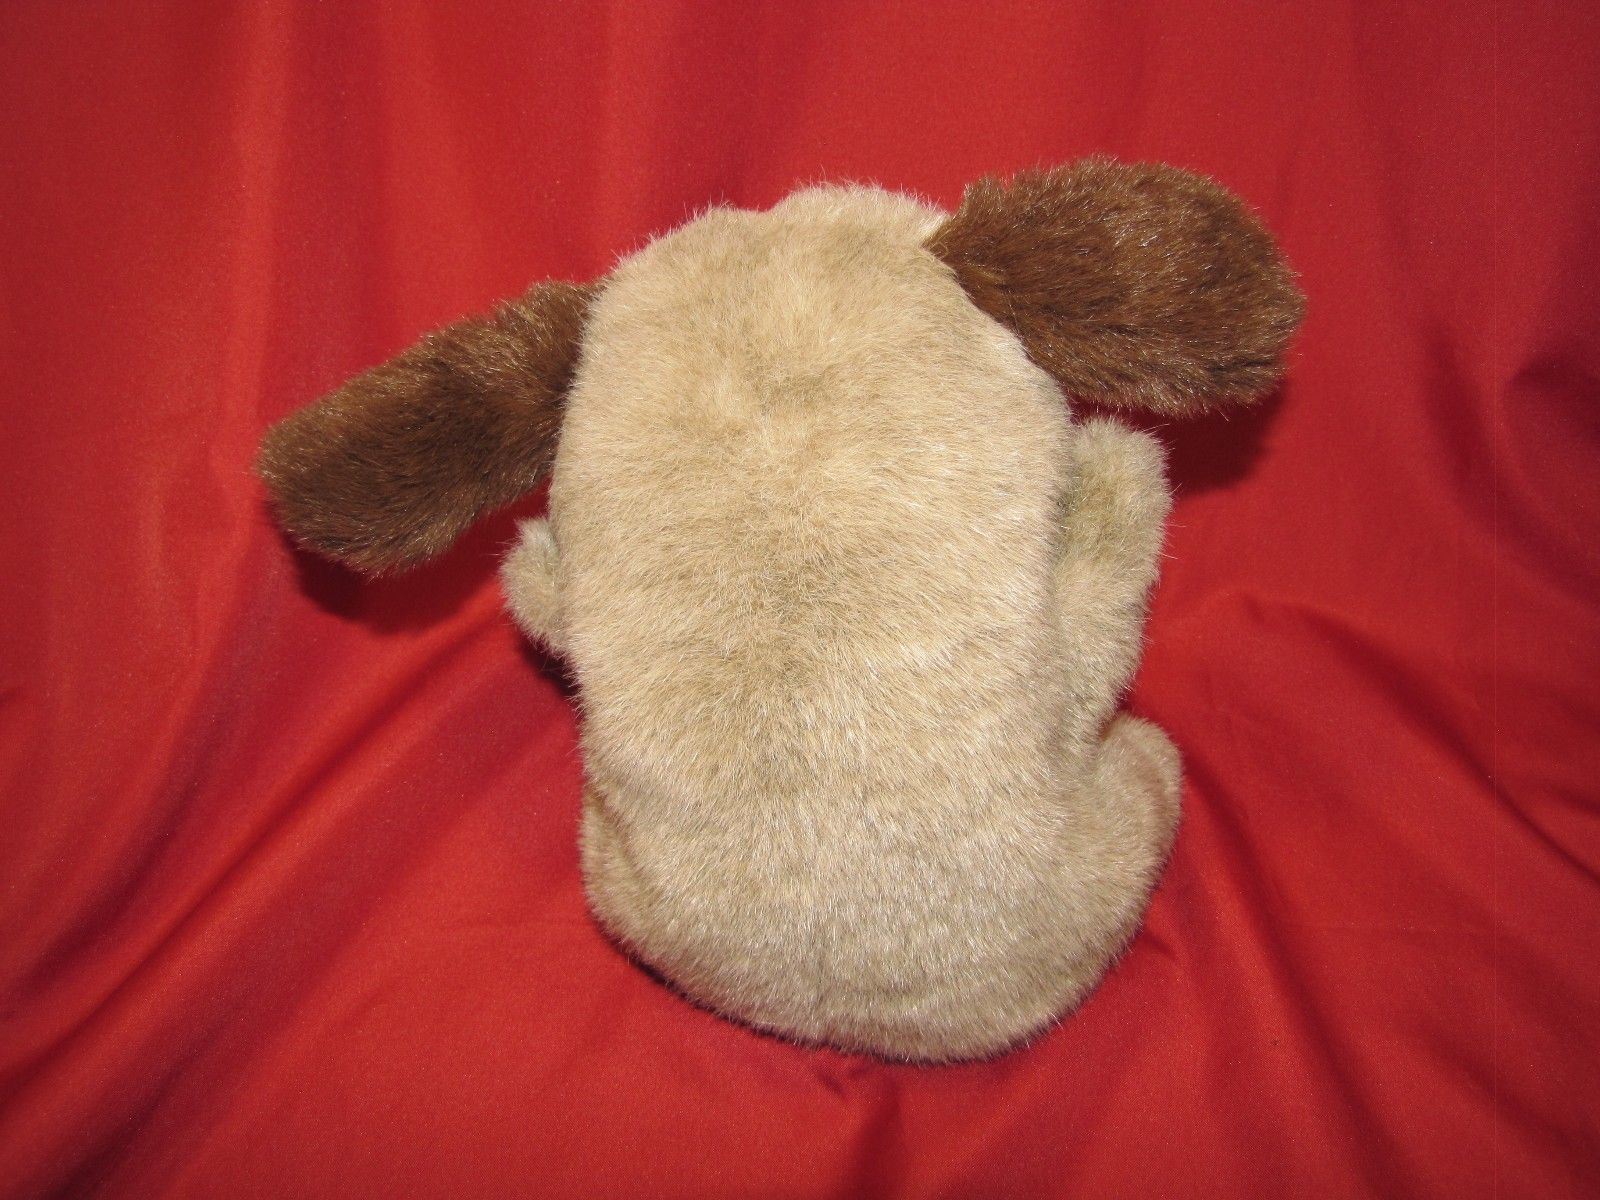 COMMONWEALTH STUFFED PLUSH HAND PUPPET HUG A PLUSH 1989 TAN BROWN PUPPY DOG image 3